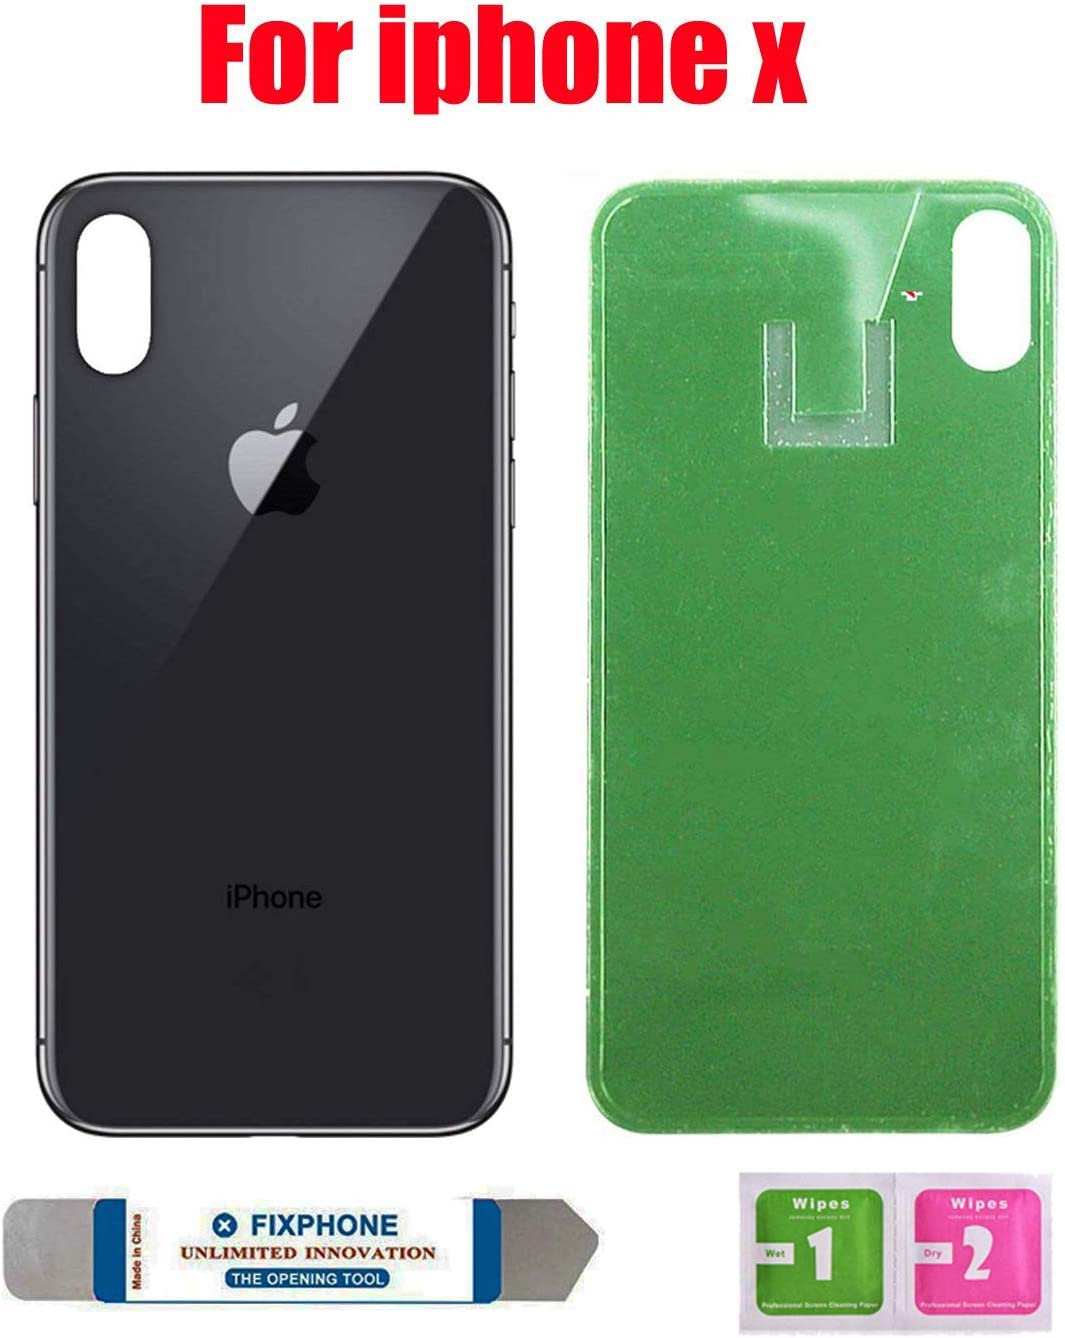 OEM Replacement Back Glass Cover Back Battery Door Pre-Installed Adhesive Replacement for iPhone Xs Silver